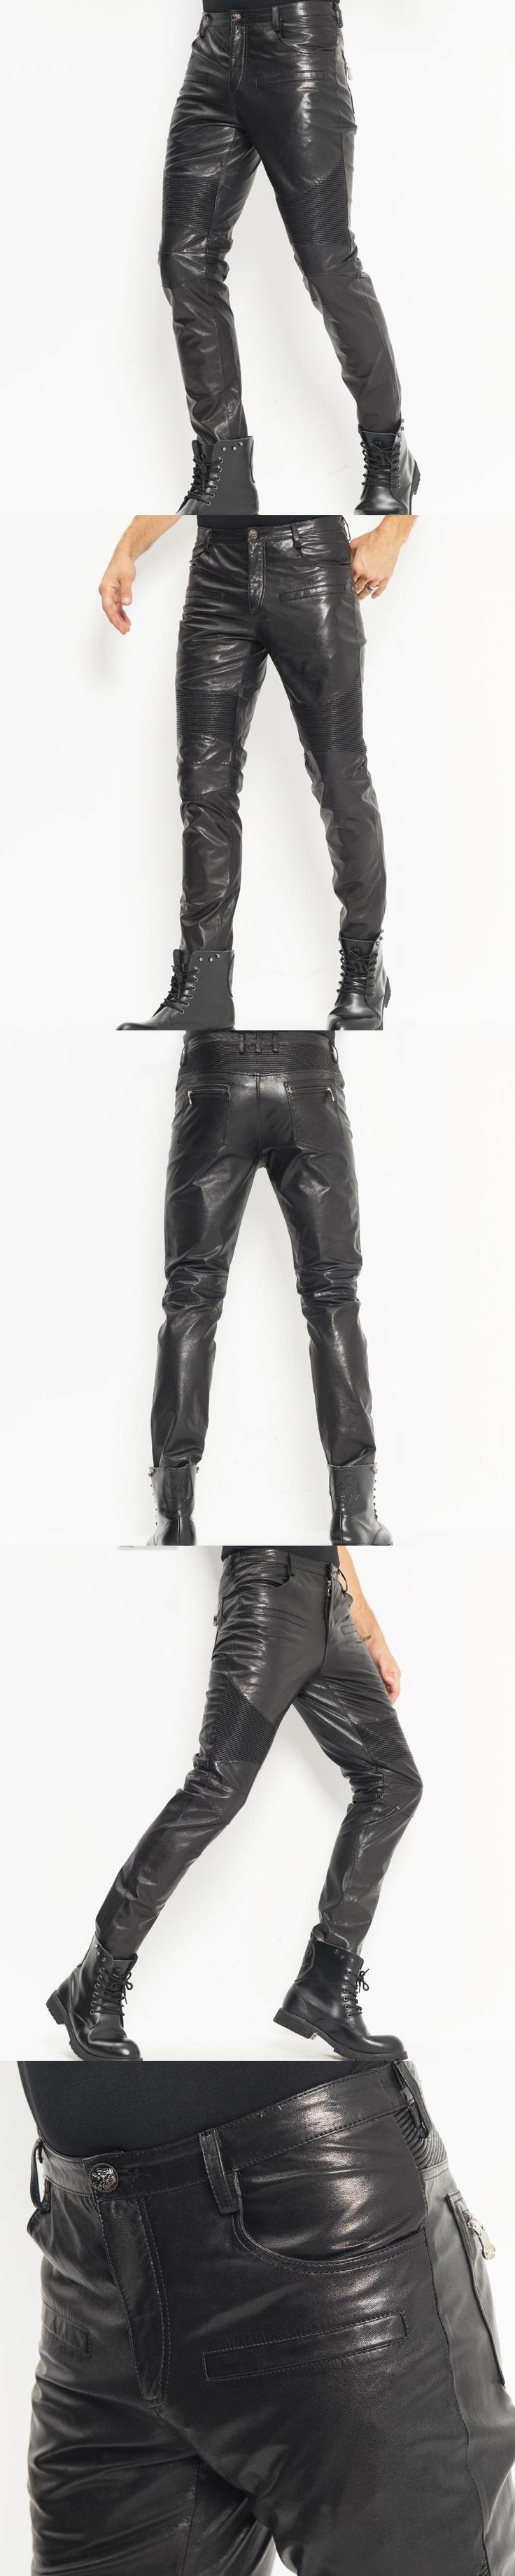 Men's Leather Pants Windproof Skinny Moto&Biker Punk Rock Pants Slick Smooth Shiny Leather Trousers Tight Sexy